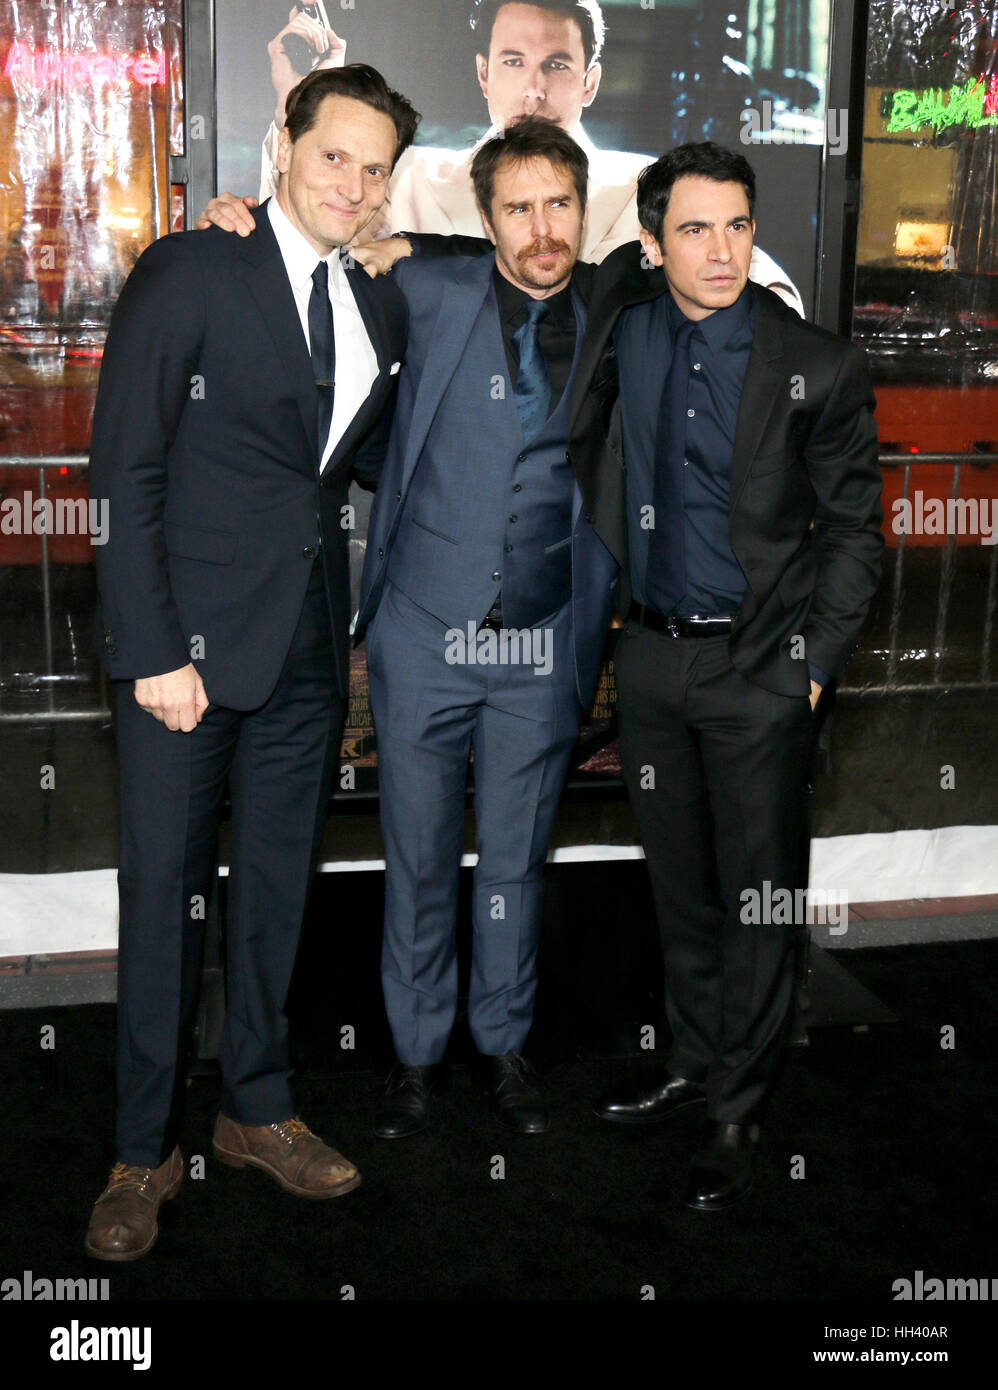 Matt Ross Sam Stockwell And Chris Messina At The Los Angeles Premiere Of Live By Night Held At The Tcl Chinese Theatre In La